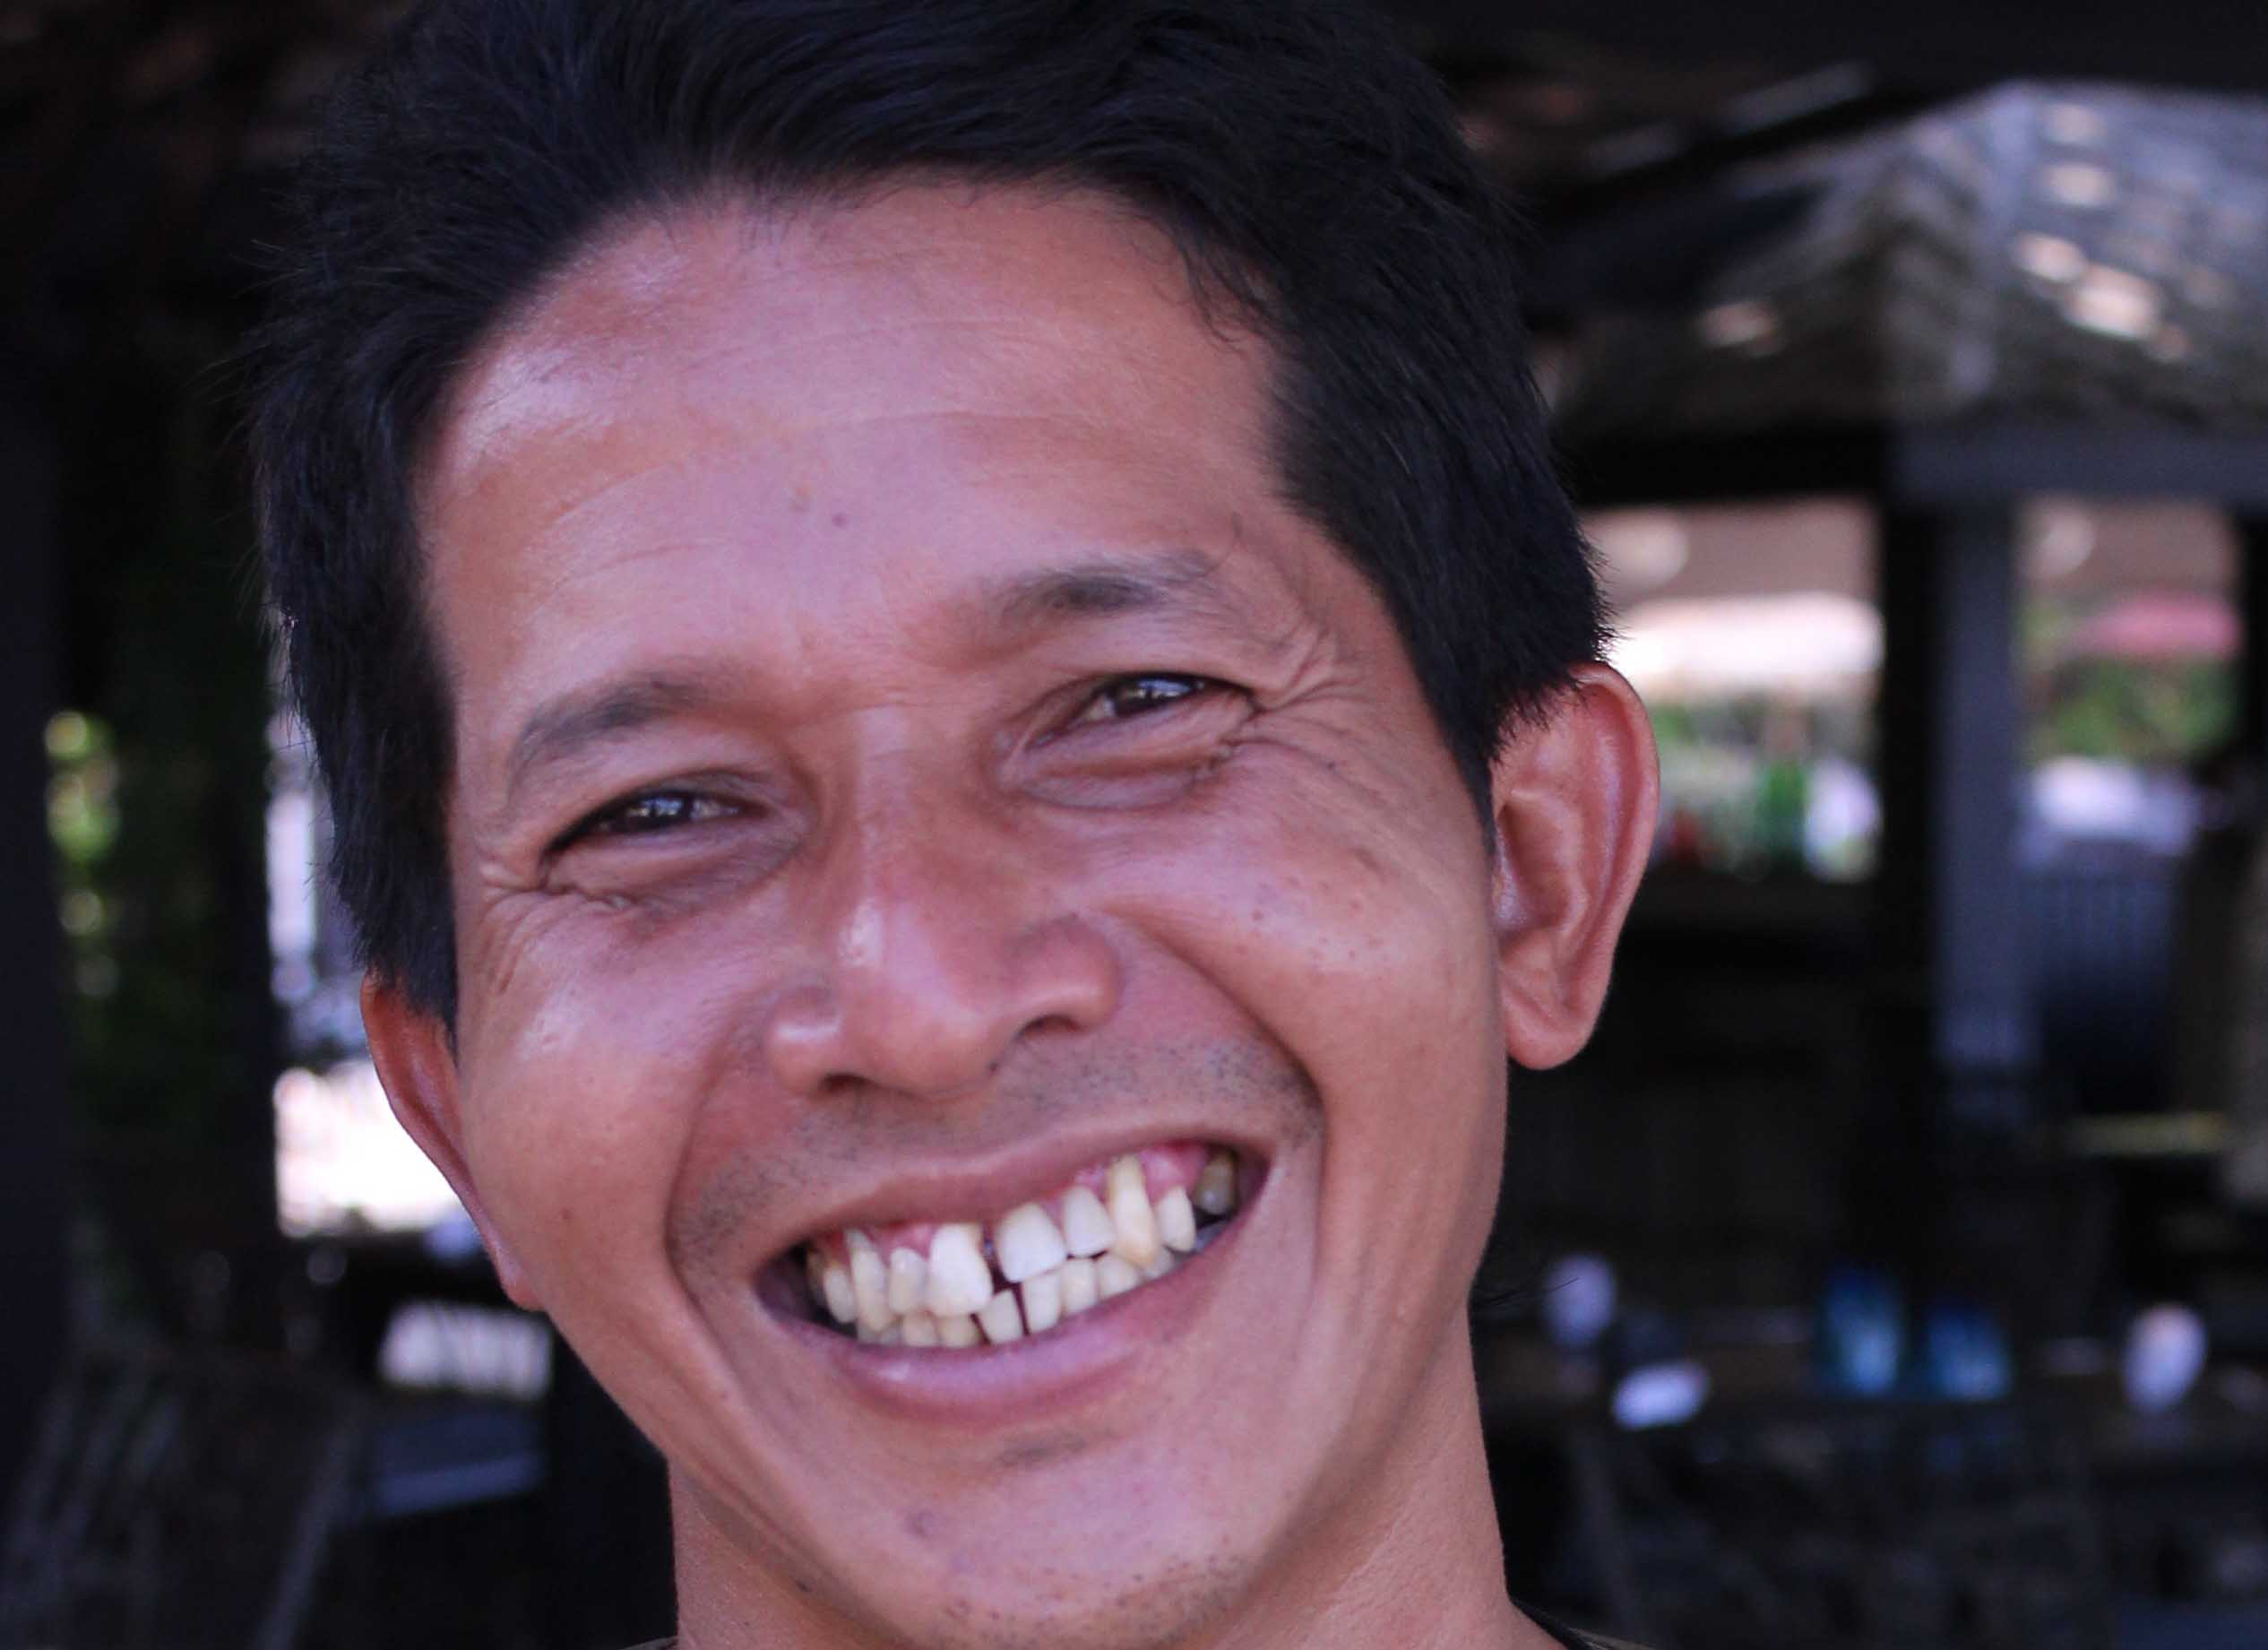 Koh Samui Staff of distinction – meet Pradap Chaidete from the Tongsai Bay | Samui Times